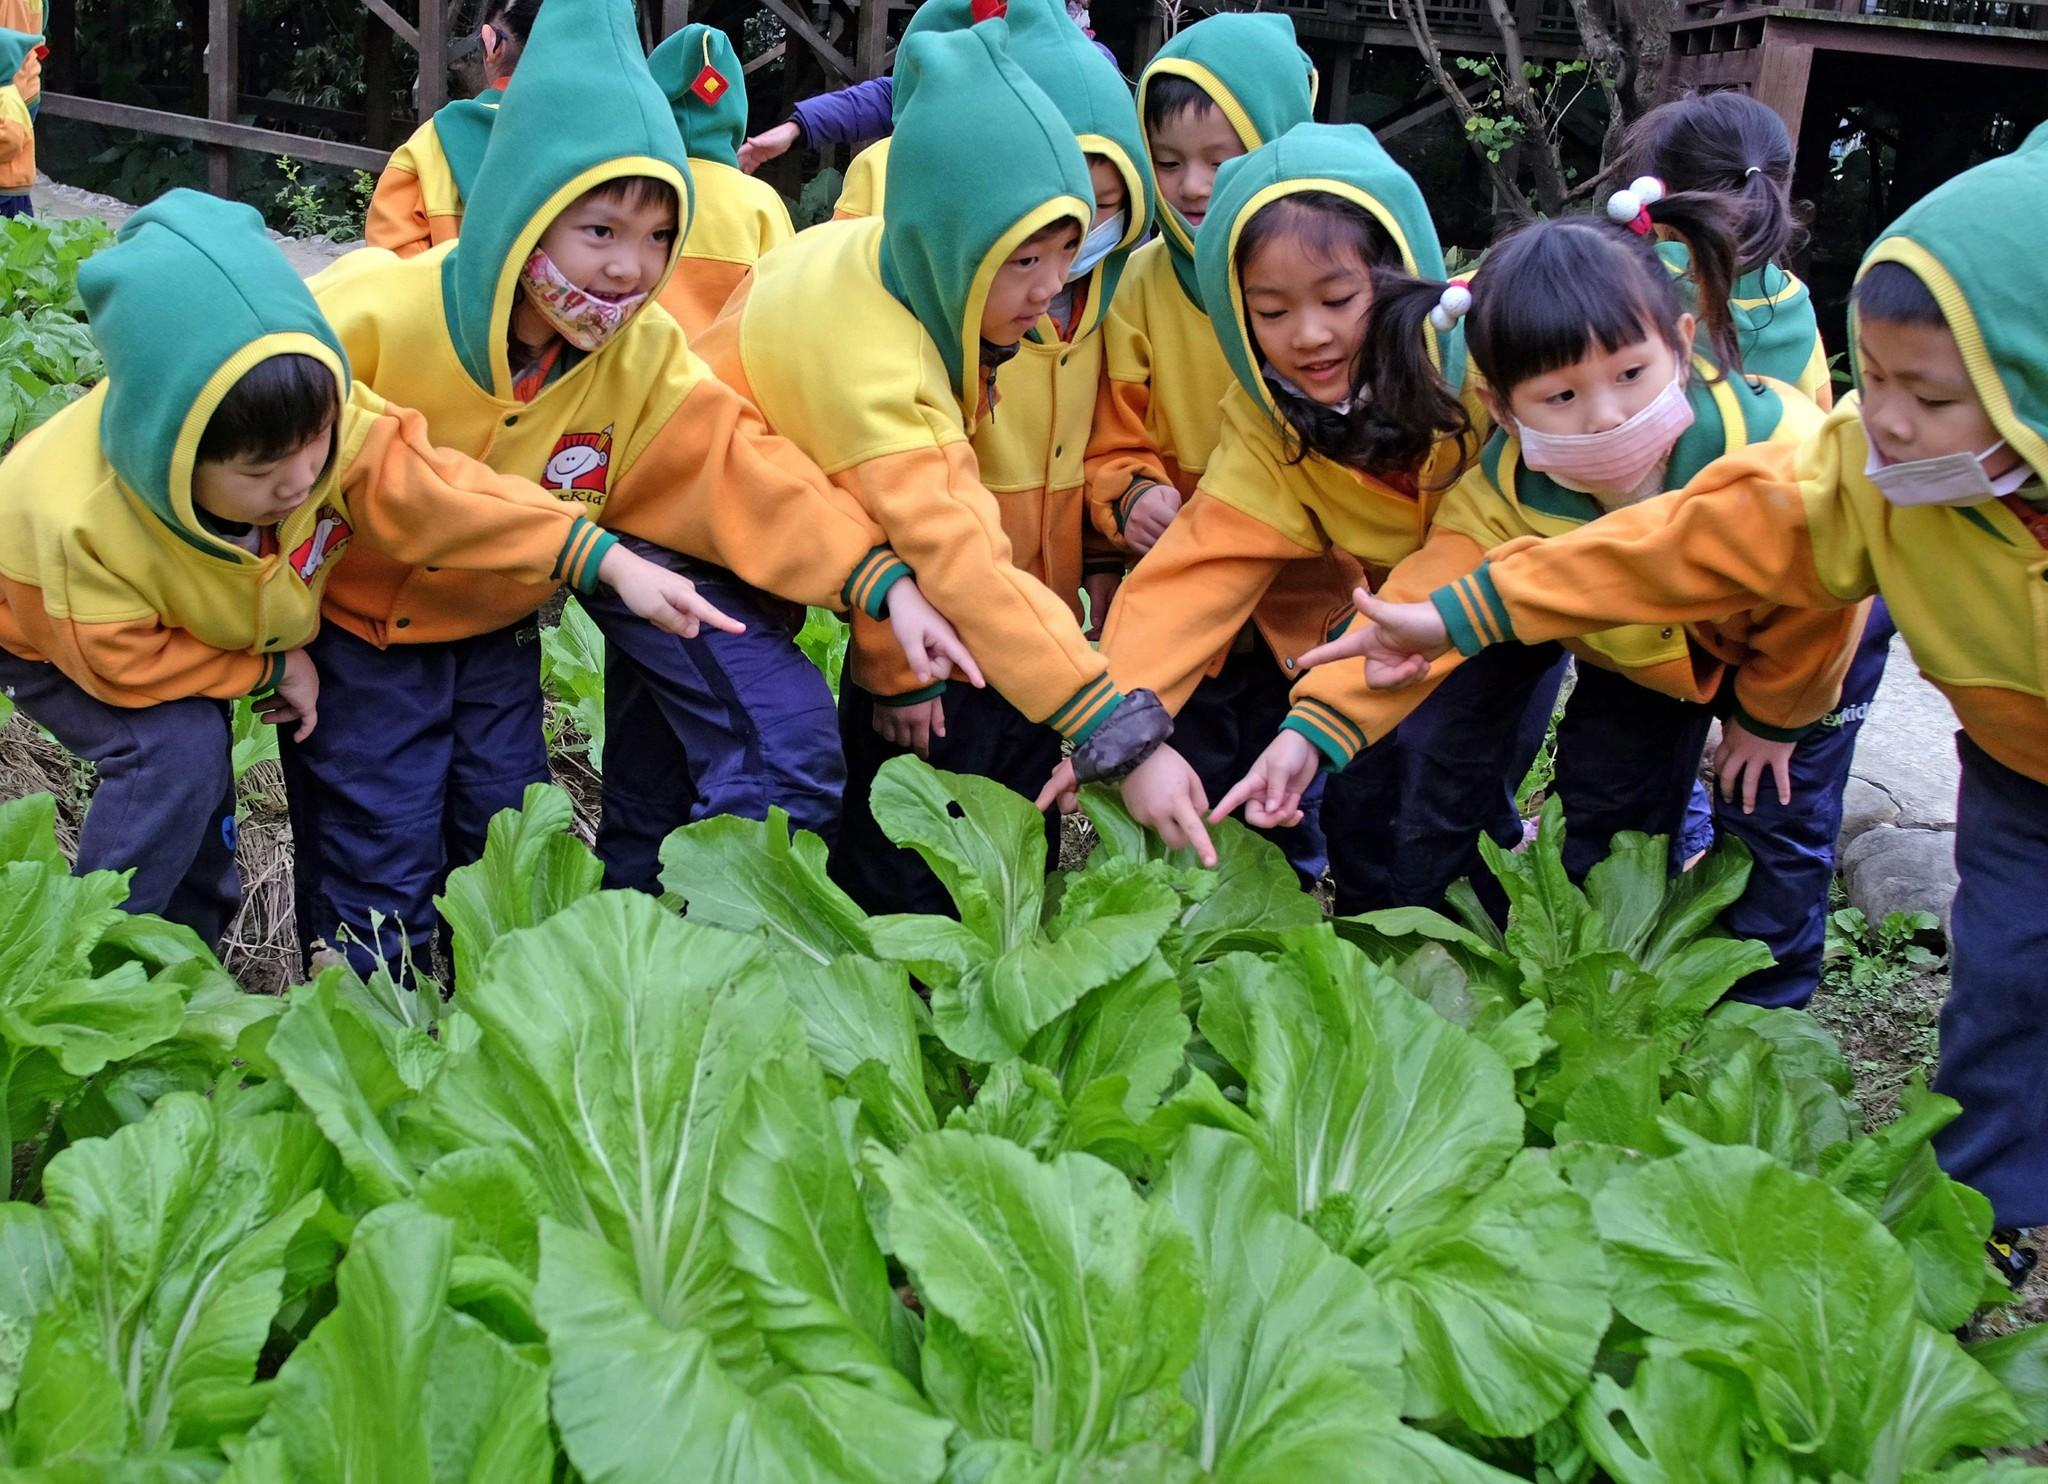 Children from a kindergarten pose for photos in front of a vegetable patch during a Hakka lunar new year tour in Taipei on January 21, 2014.